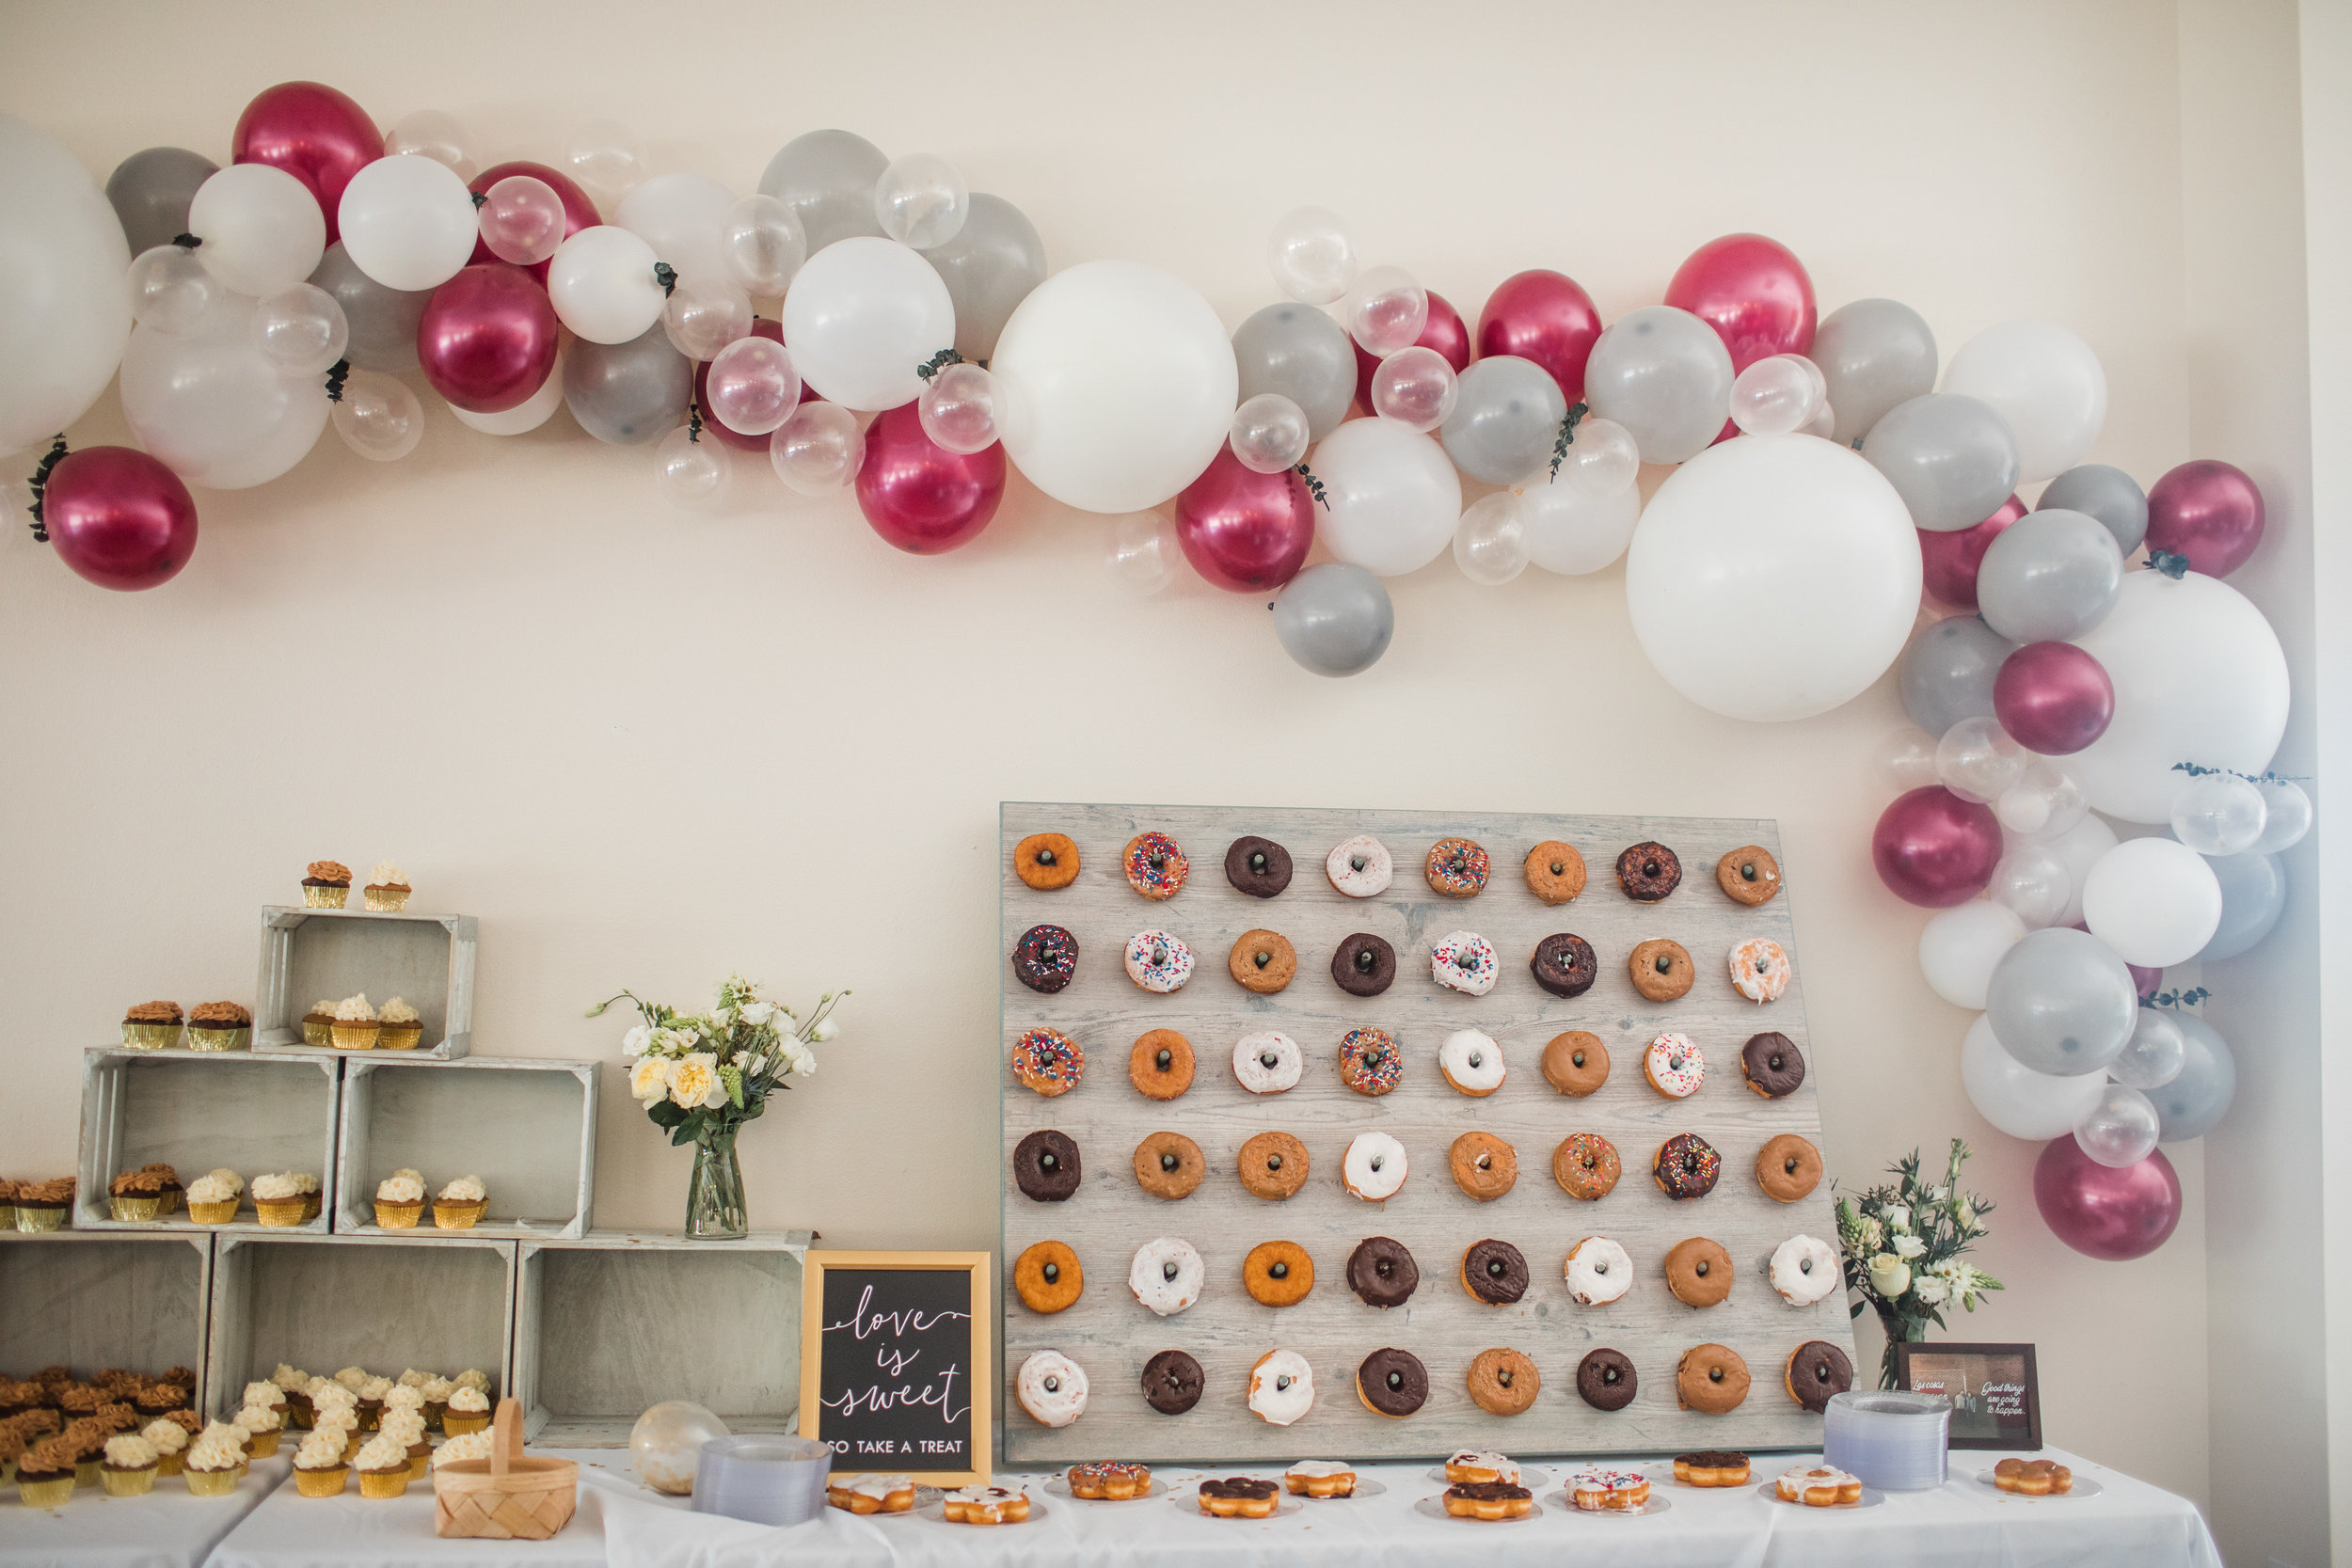 wedding reception decor balloon arch donut board and cupcakes with flowers